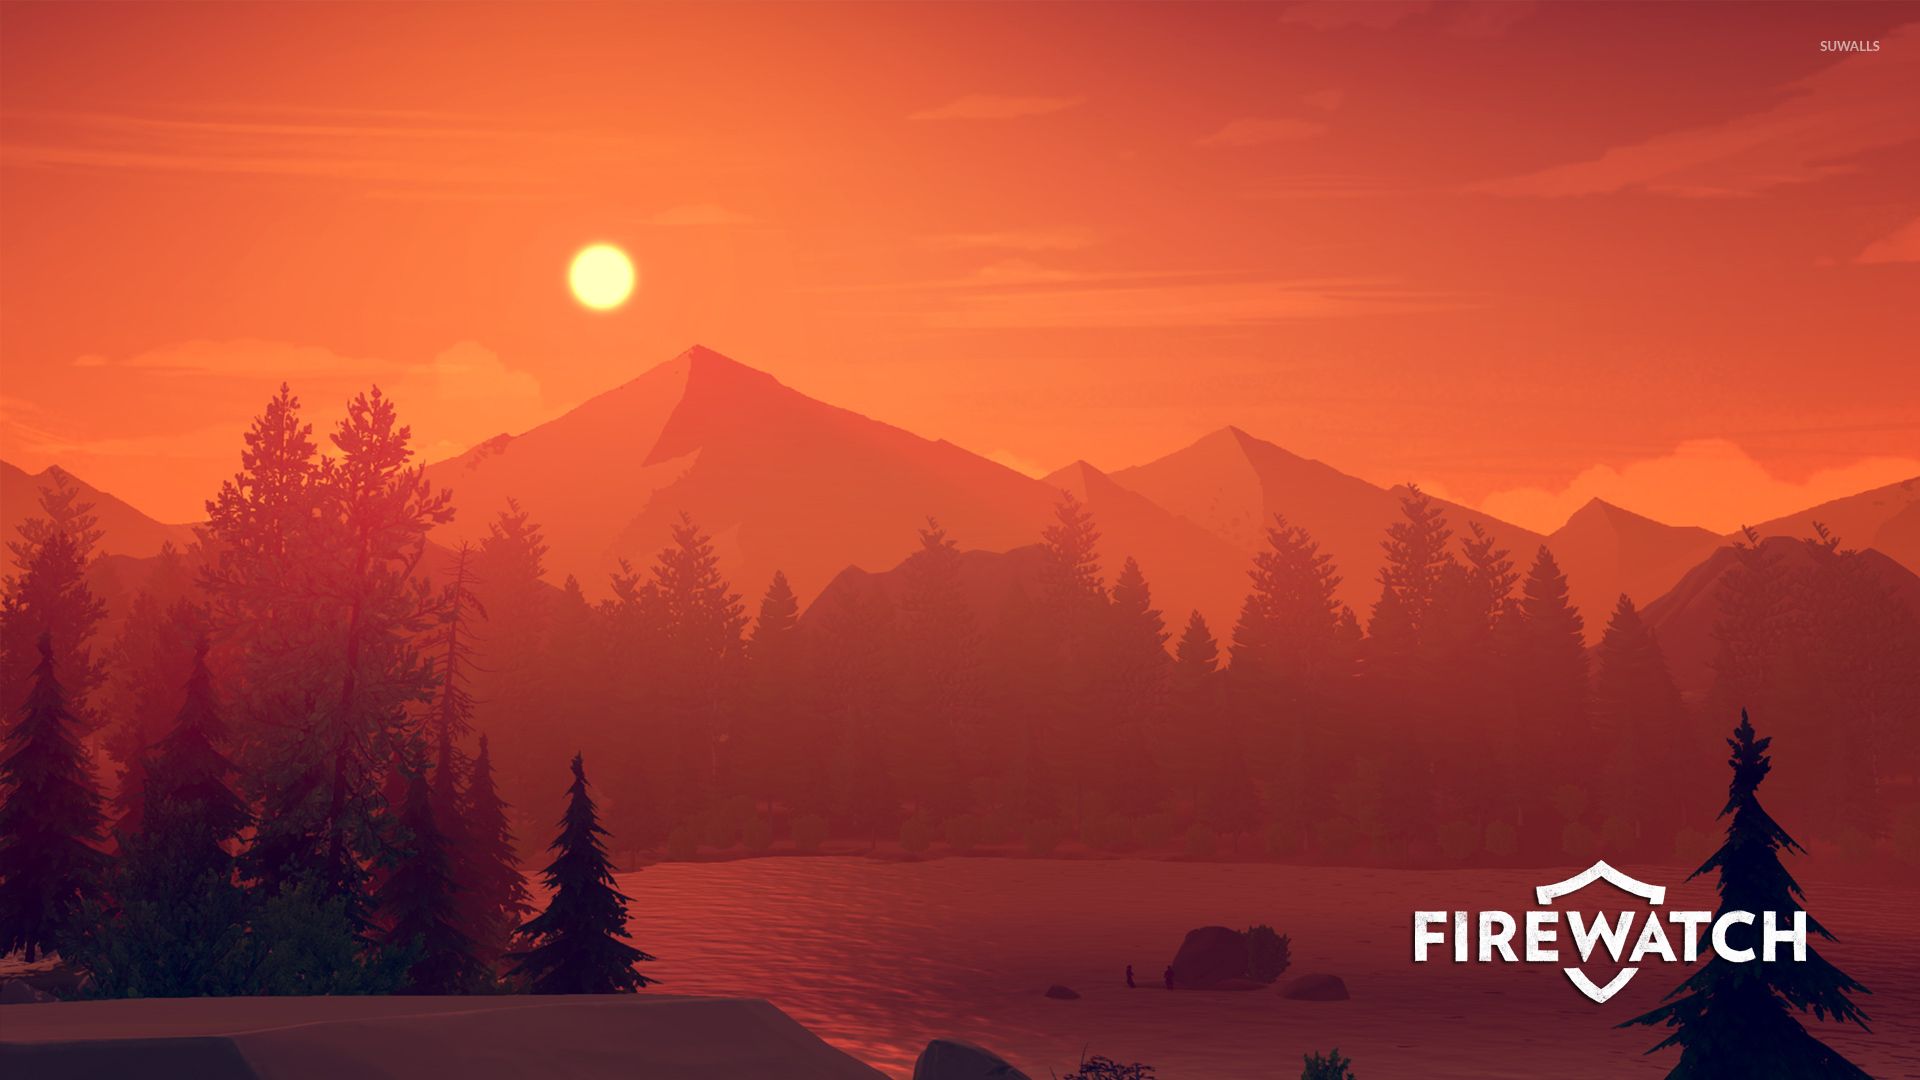 The View From The Fire Lookout Tower In Firewatch Wallpaper Game